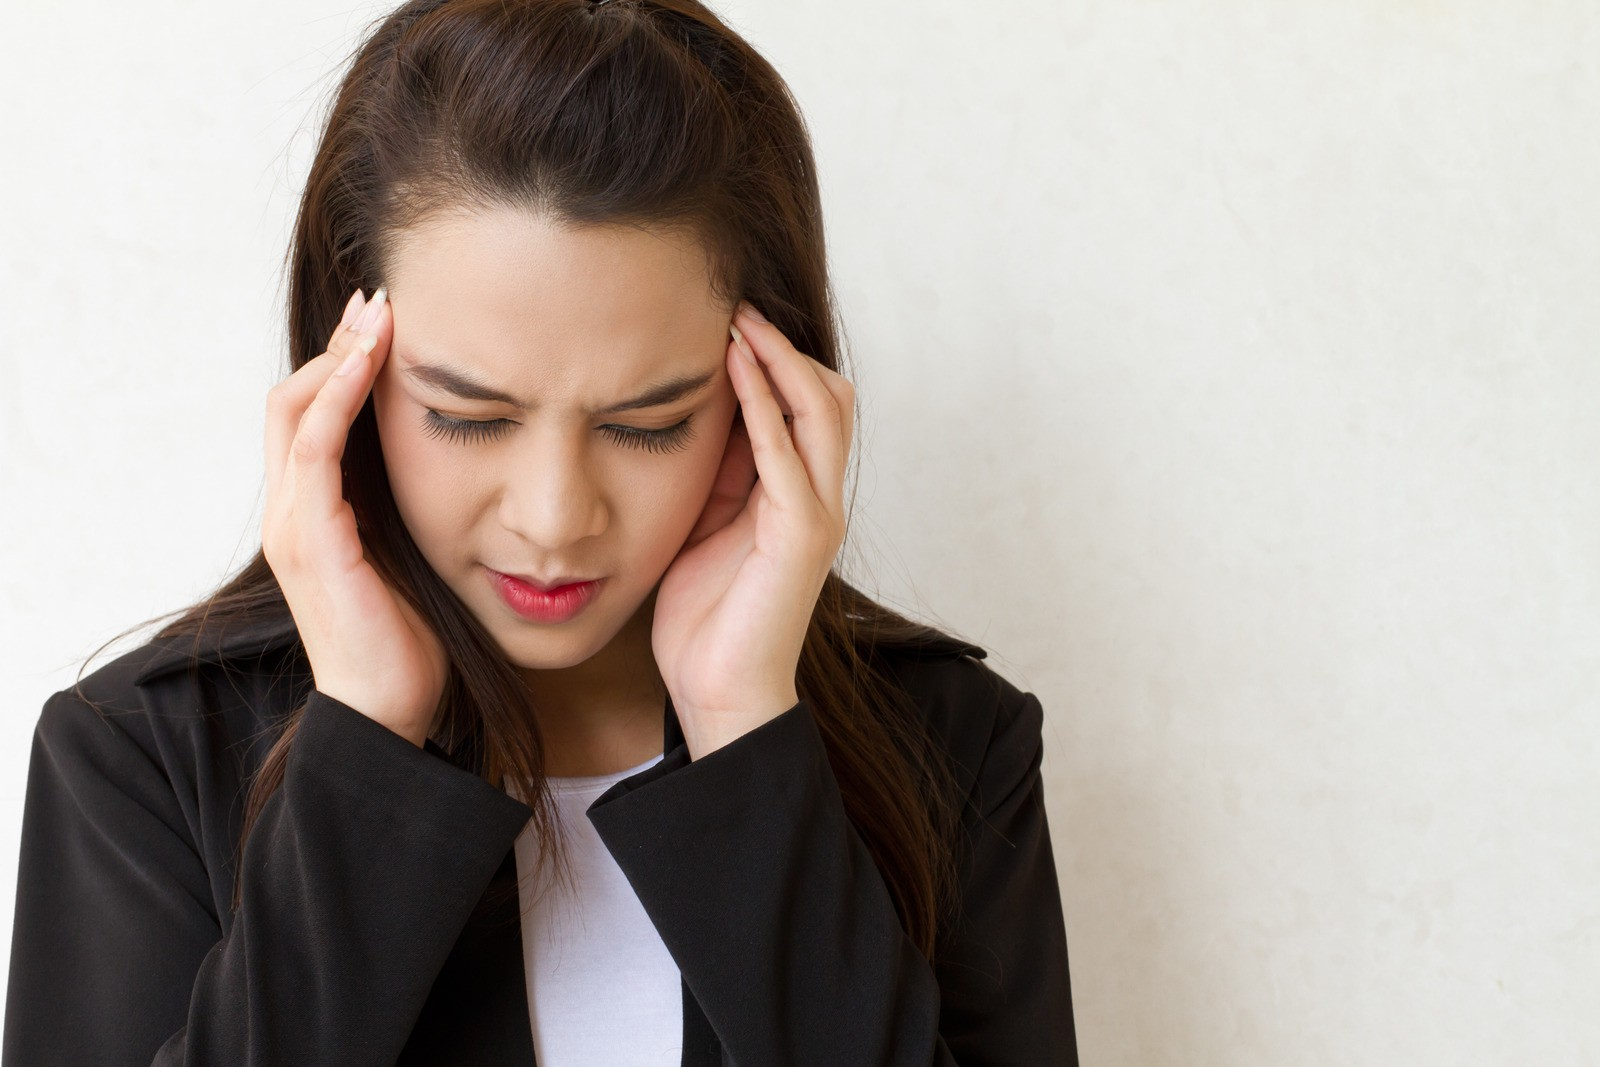 Treatment of Migraines and TMJ Pain Dentistry Services